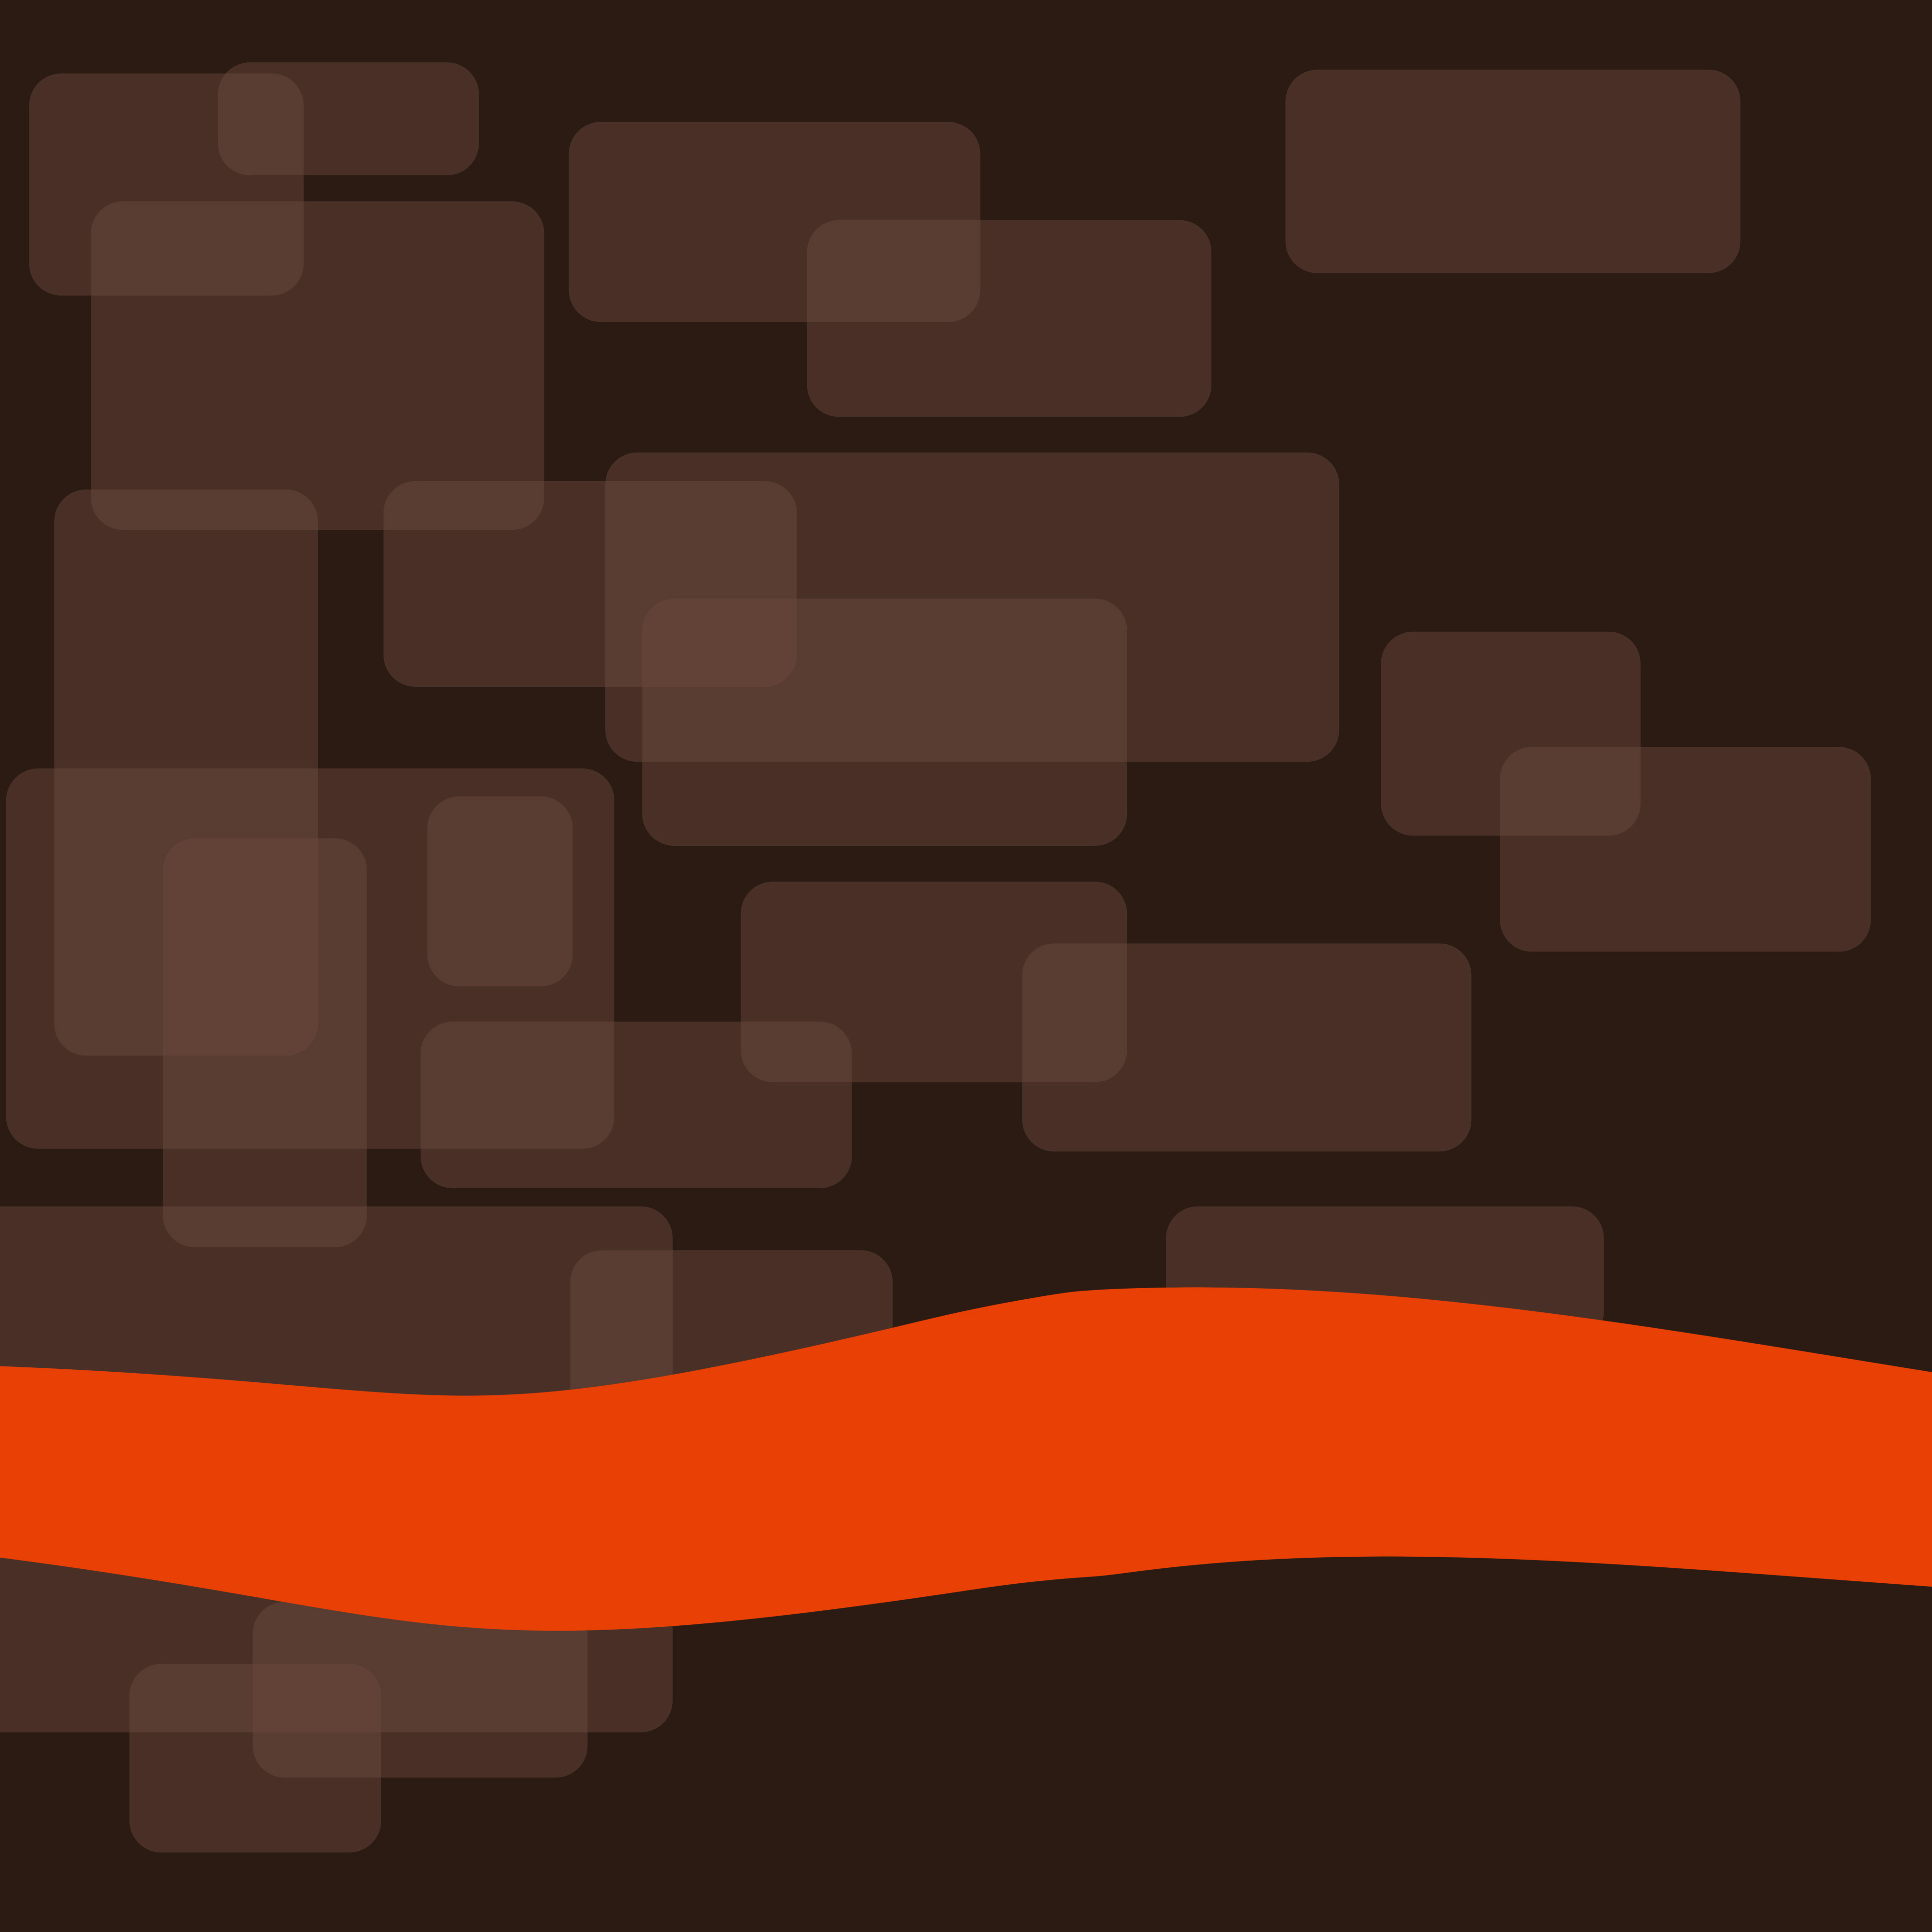 a background image of coffee coloured overlapping squares and a orange wave design